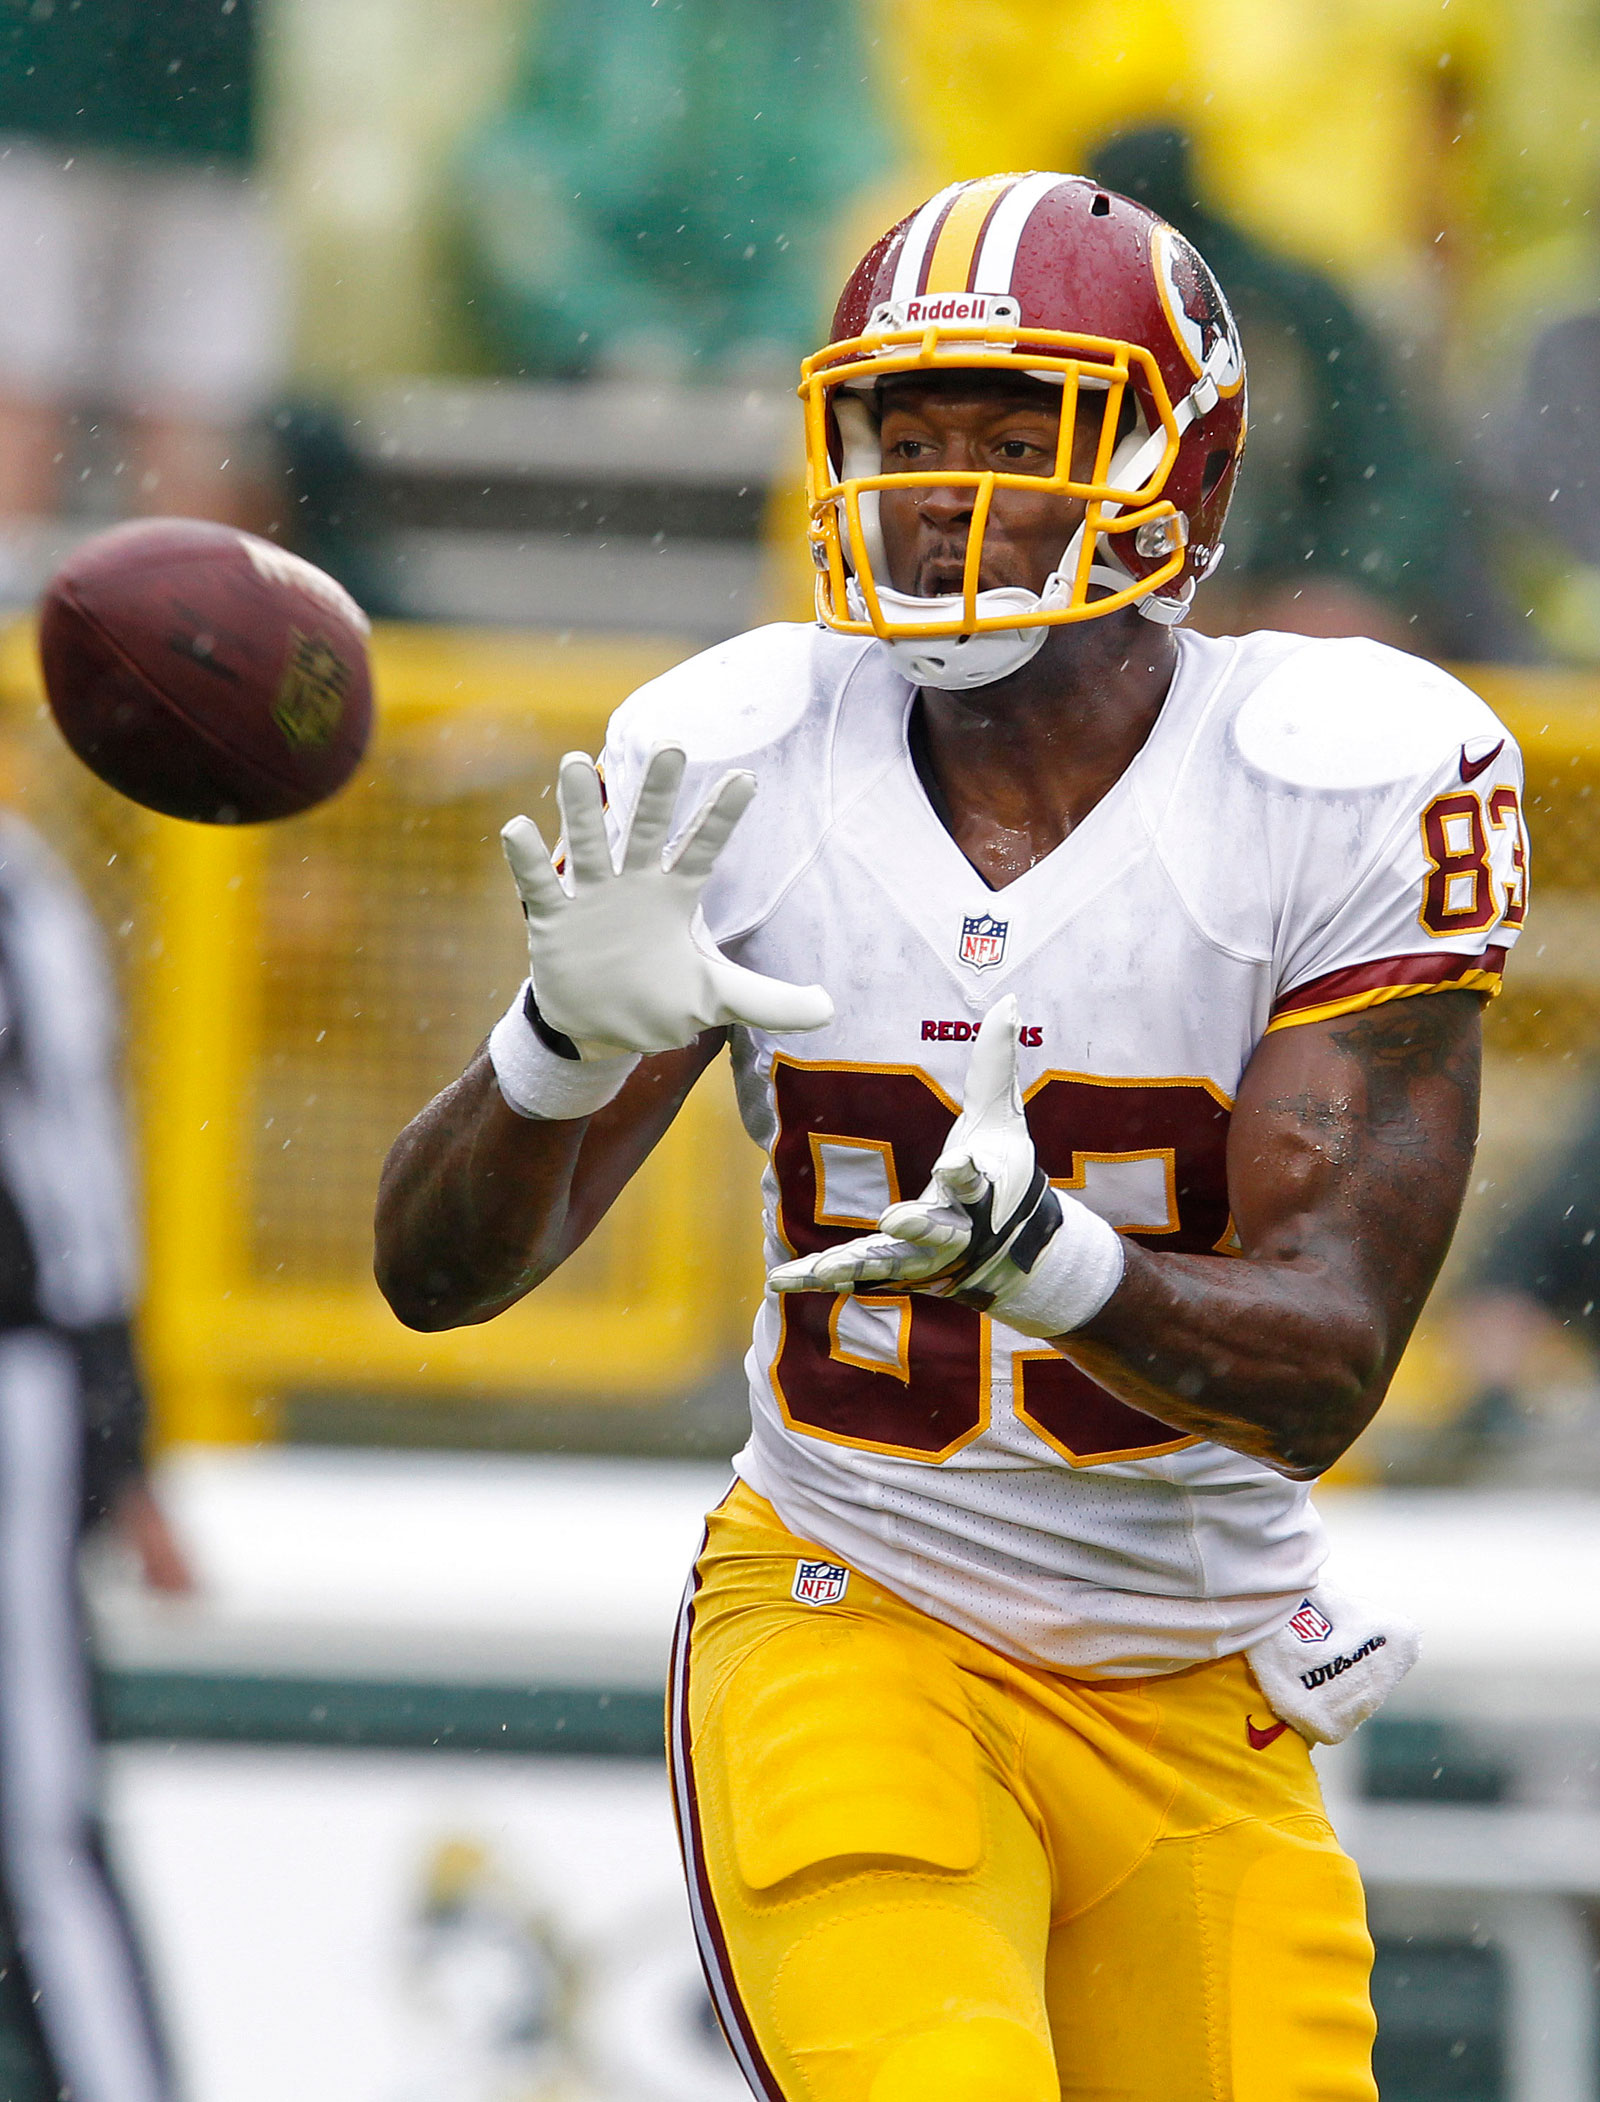 Report: Redskins' TE Davis charged with DUI